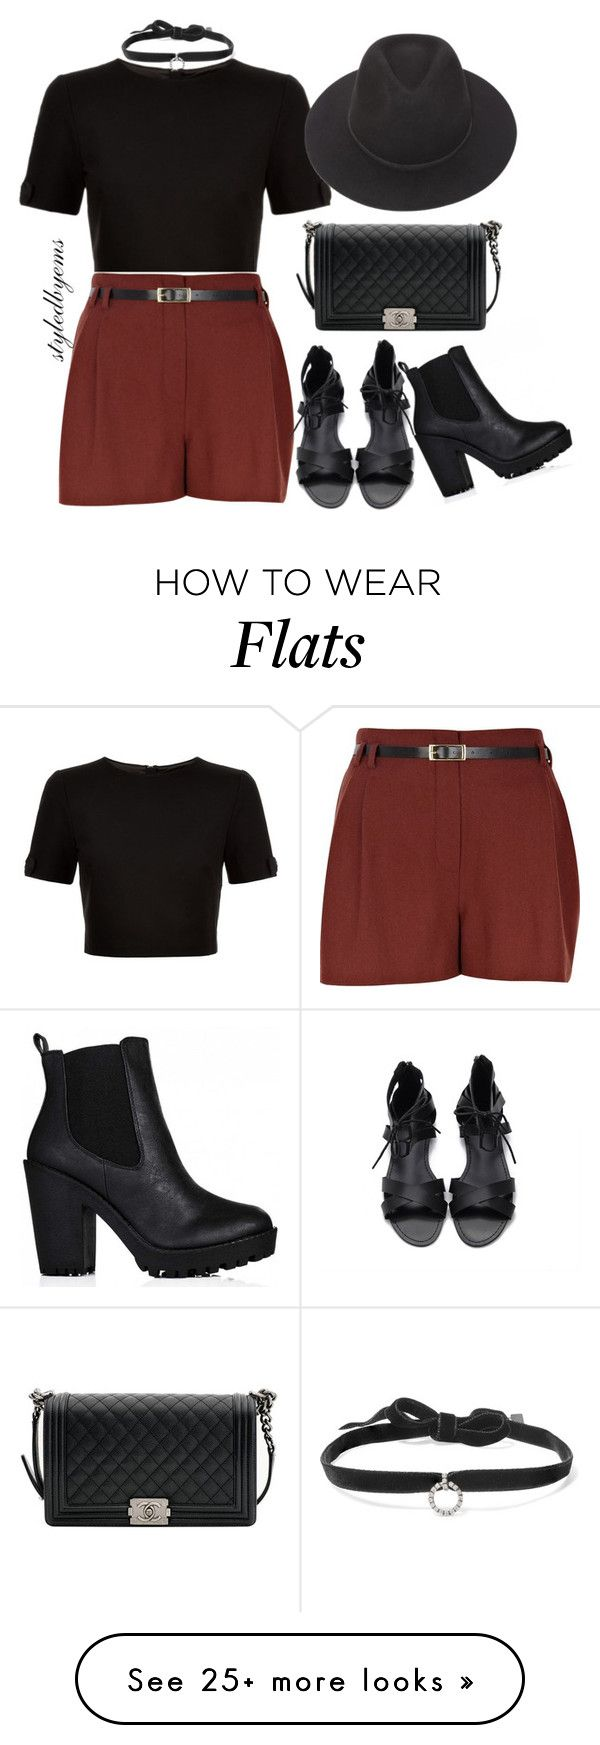 """Shoe dilemma! Heels or flats?? xx #Styledbytherow"" by riseoftherow on Polyvore featuring DANNIJO, Ted Baker, River Island, Chanel and Brixton"